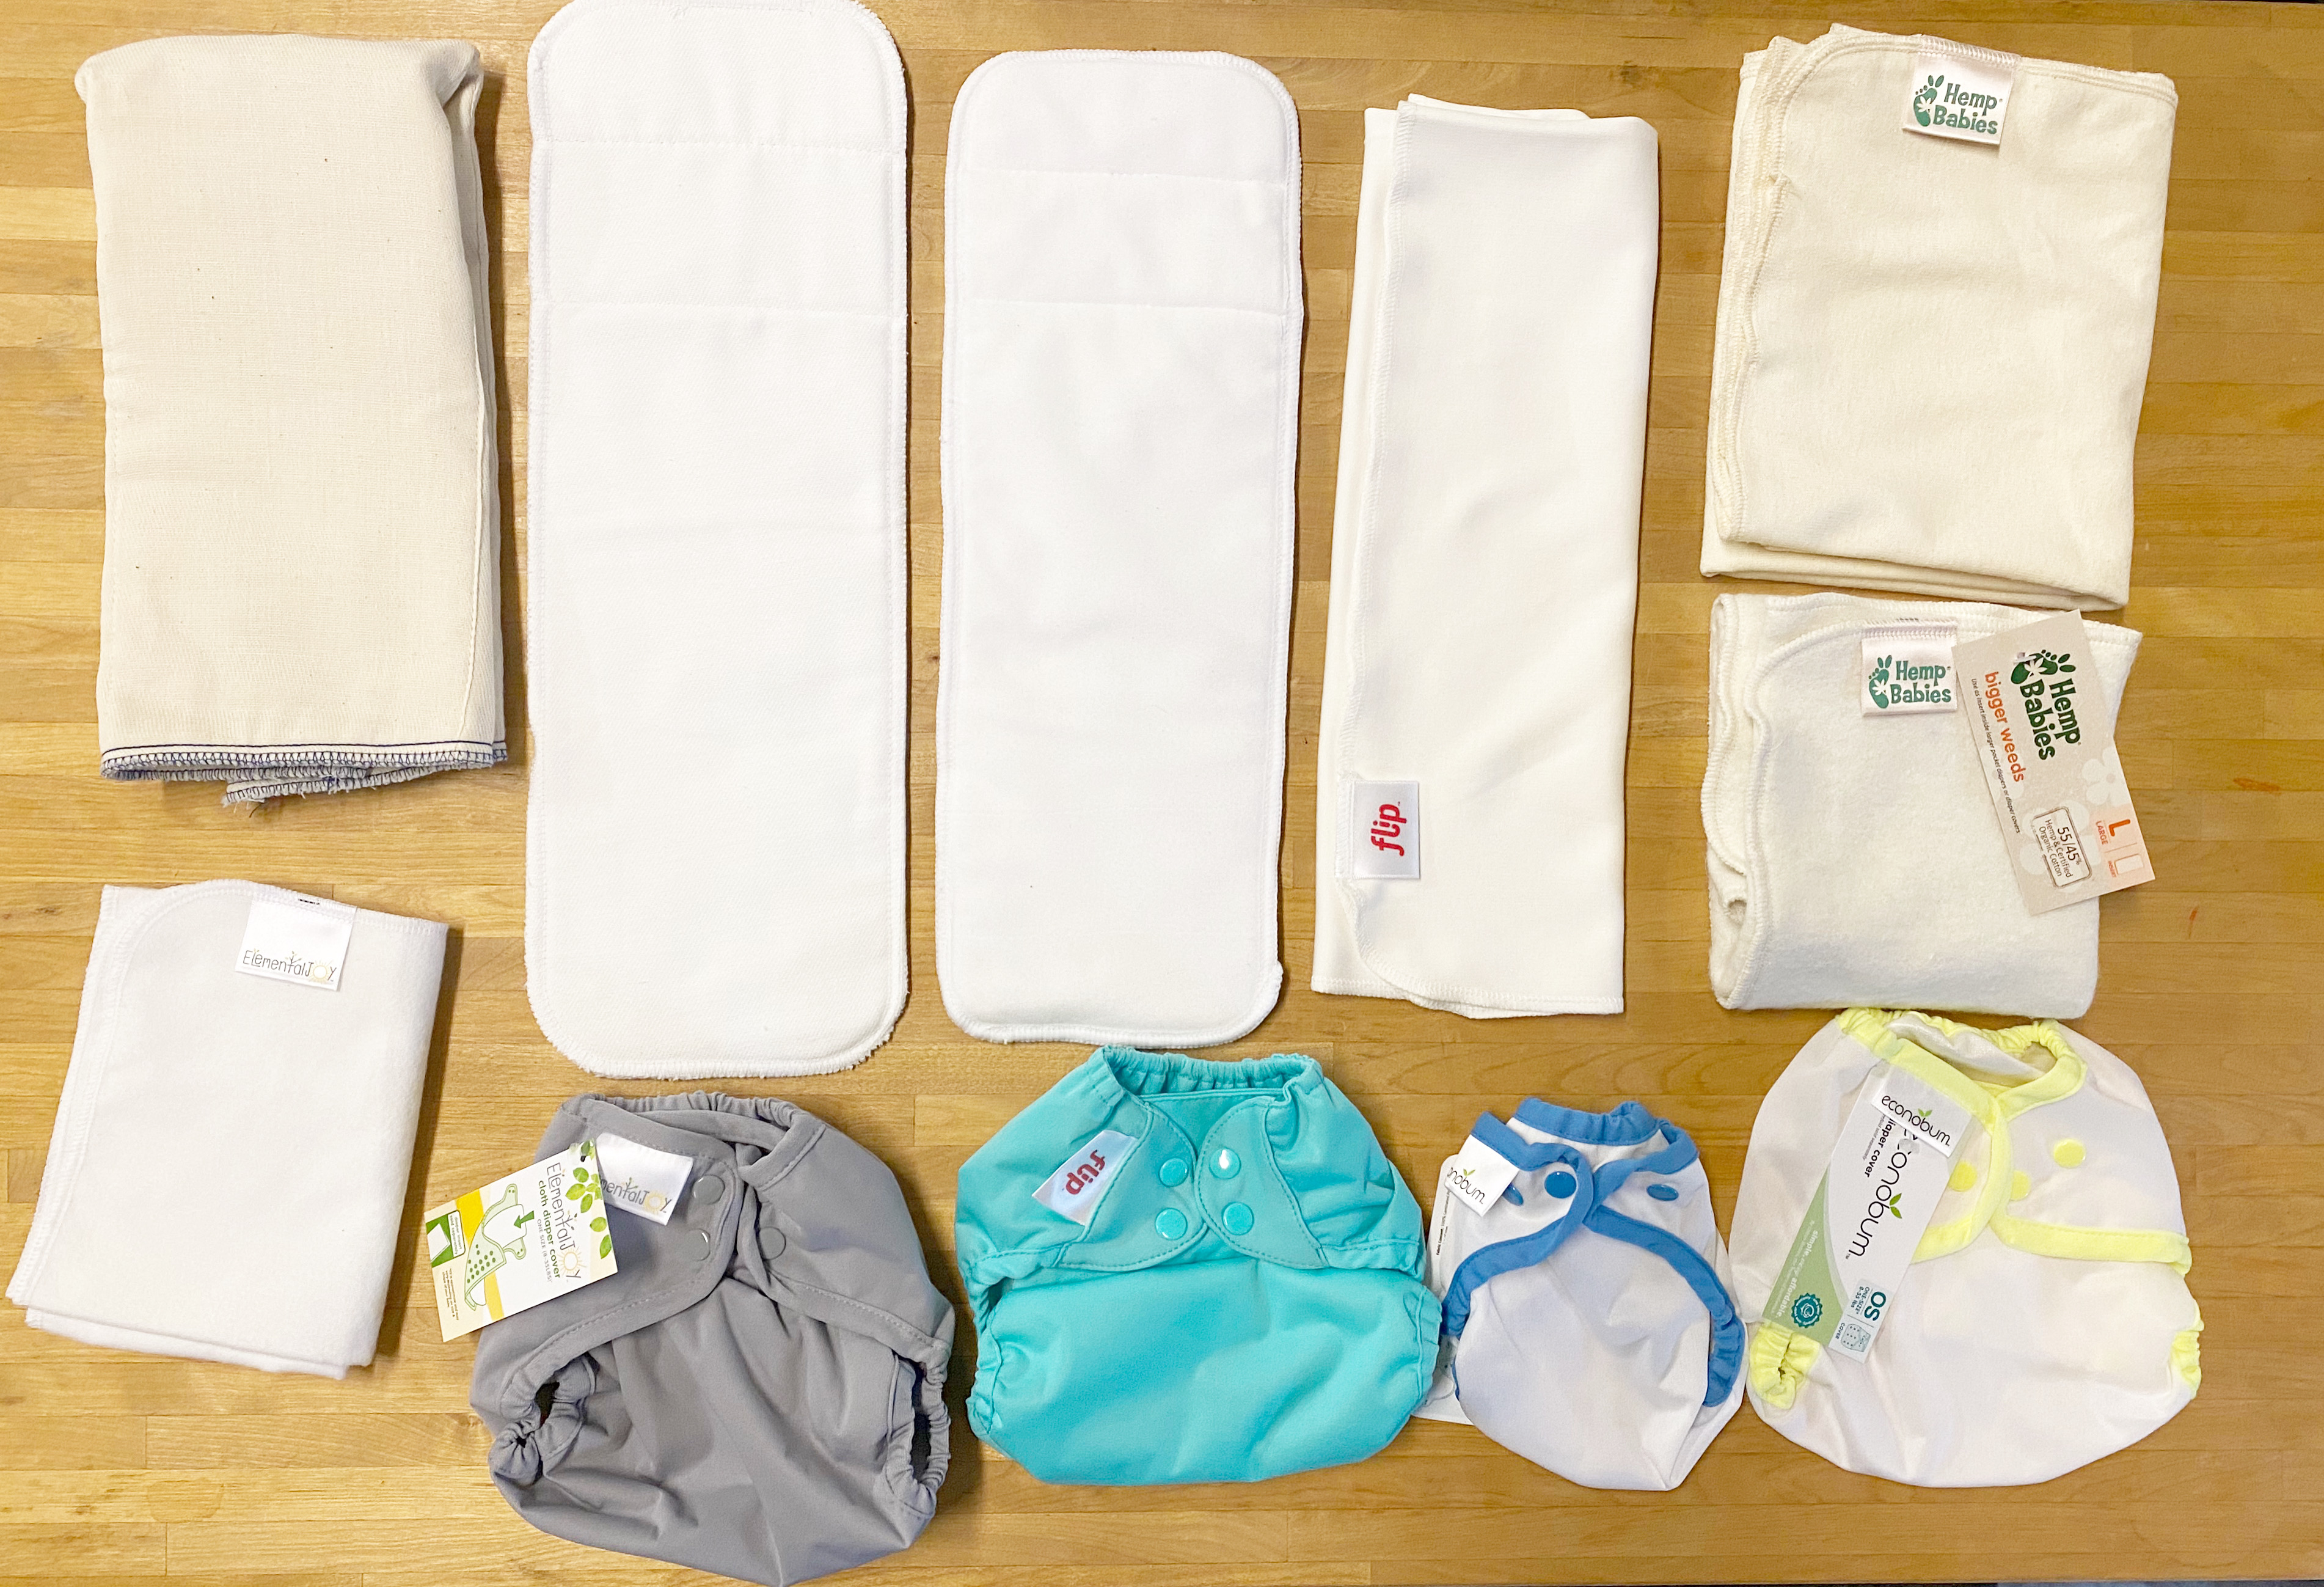 Choosing an insert to use inside a cloth diaper cover. #clothdiapers #Flipdiapers #ElementalJoy #Econobum #prefolds #flats